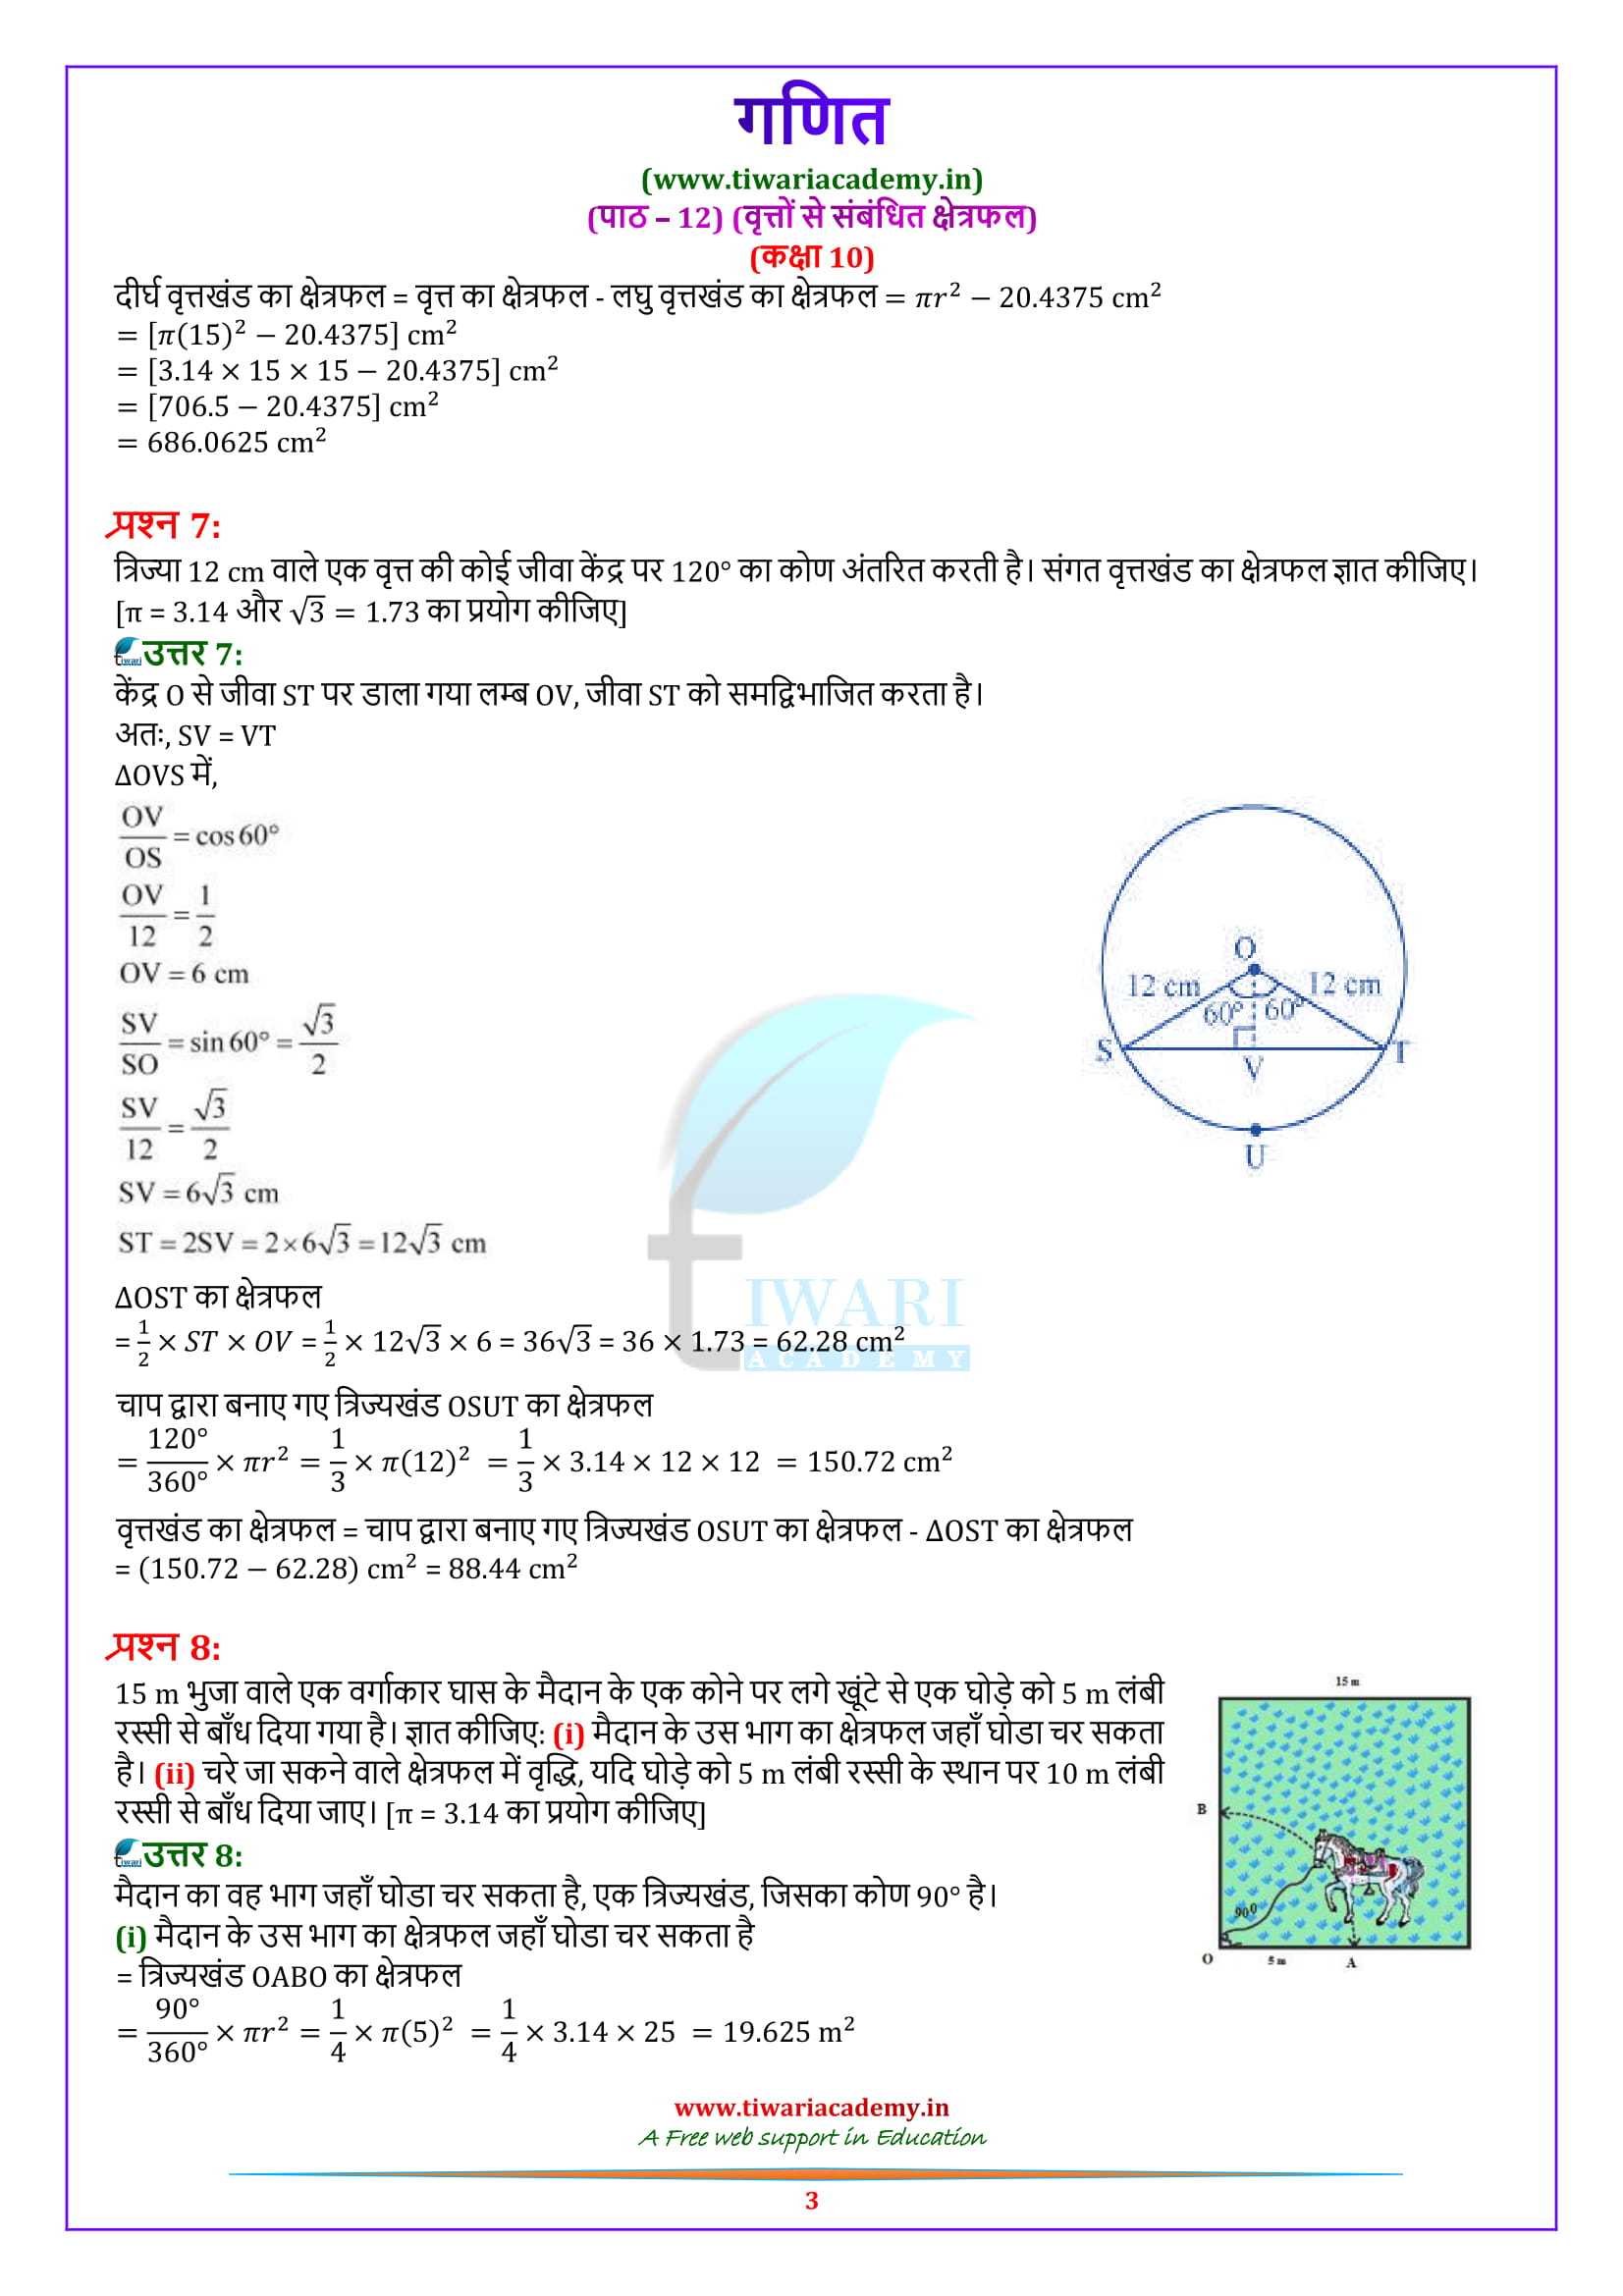 Class 10 Maths Exercise 12.2 Solutions for up and mp board